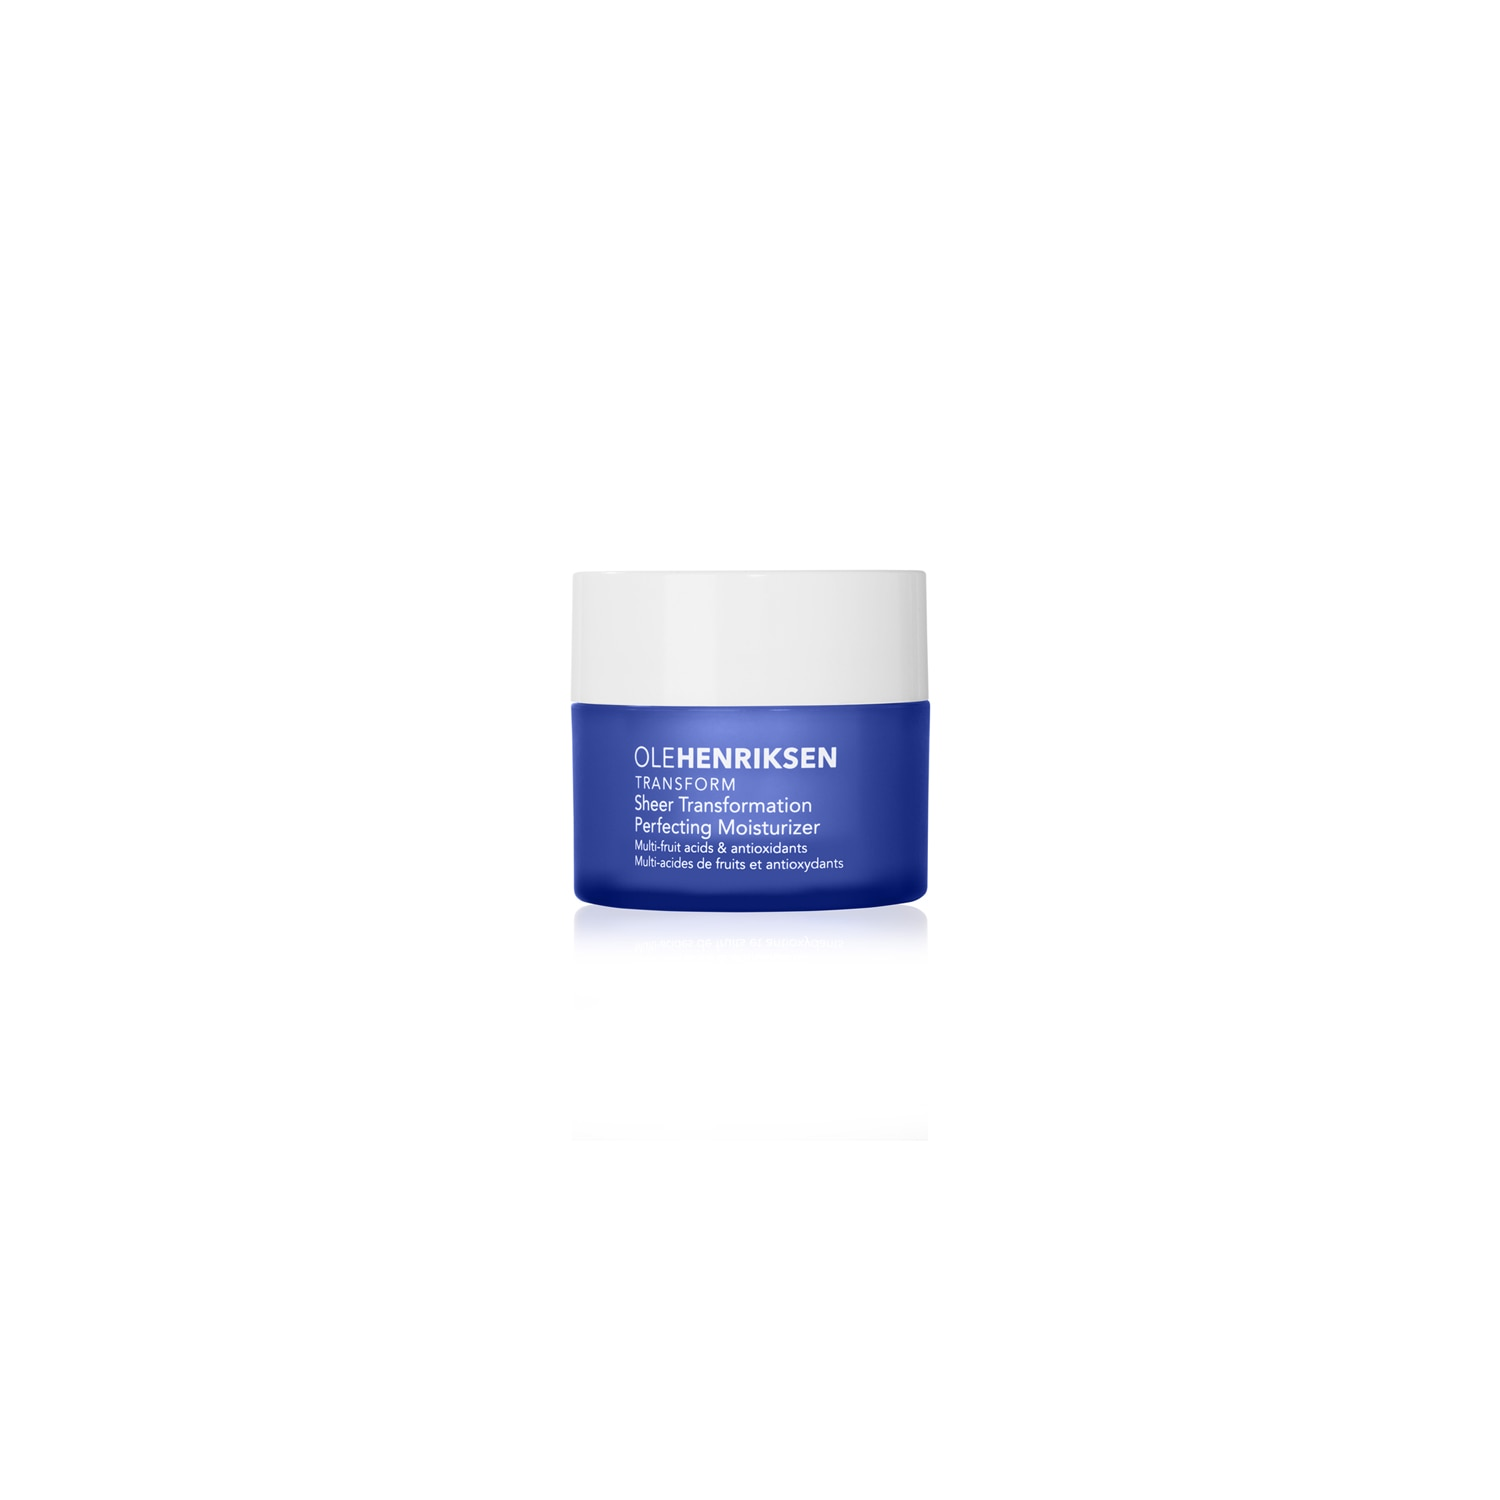 SHEER TRANSFORMATION® PERFECTING MOISTURIZER